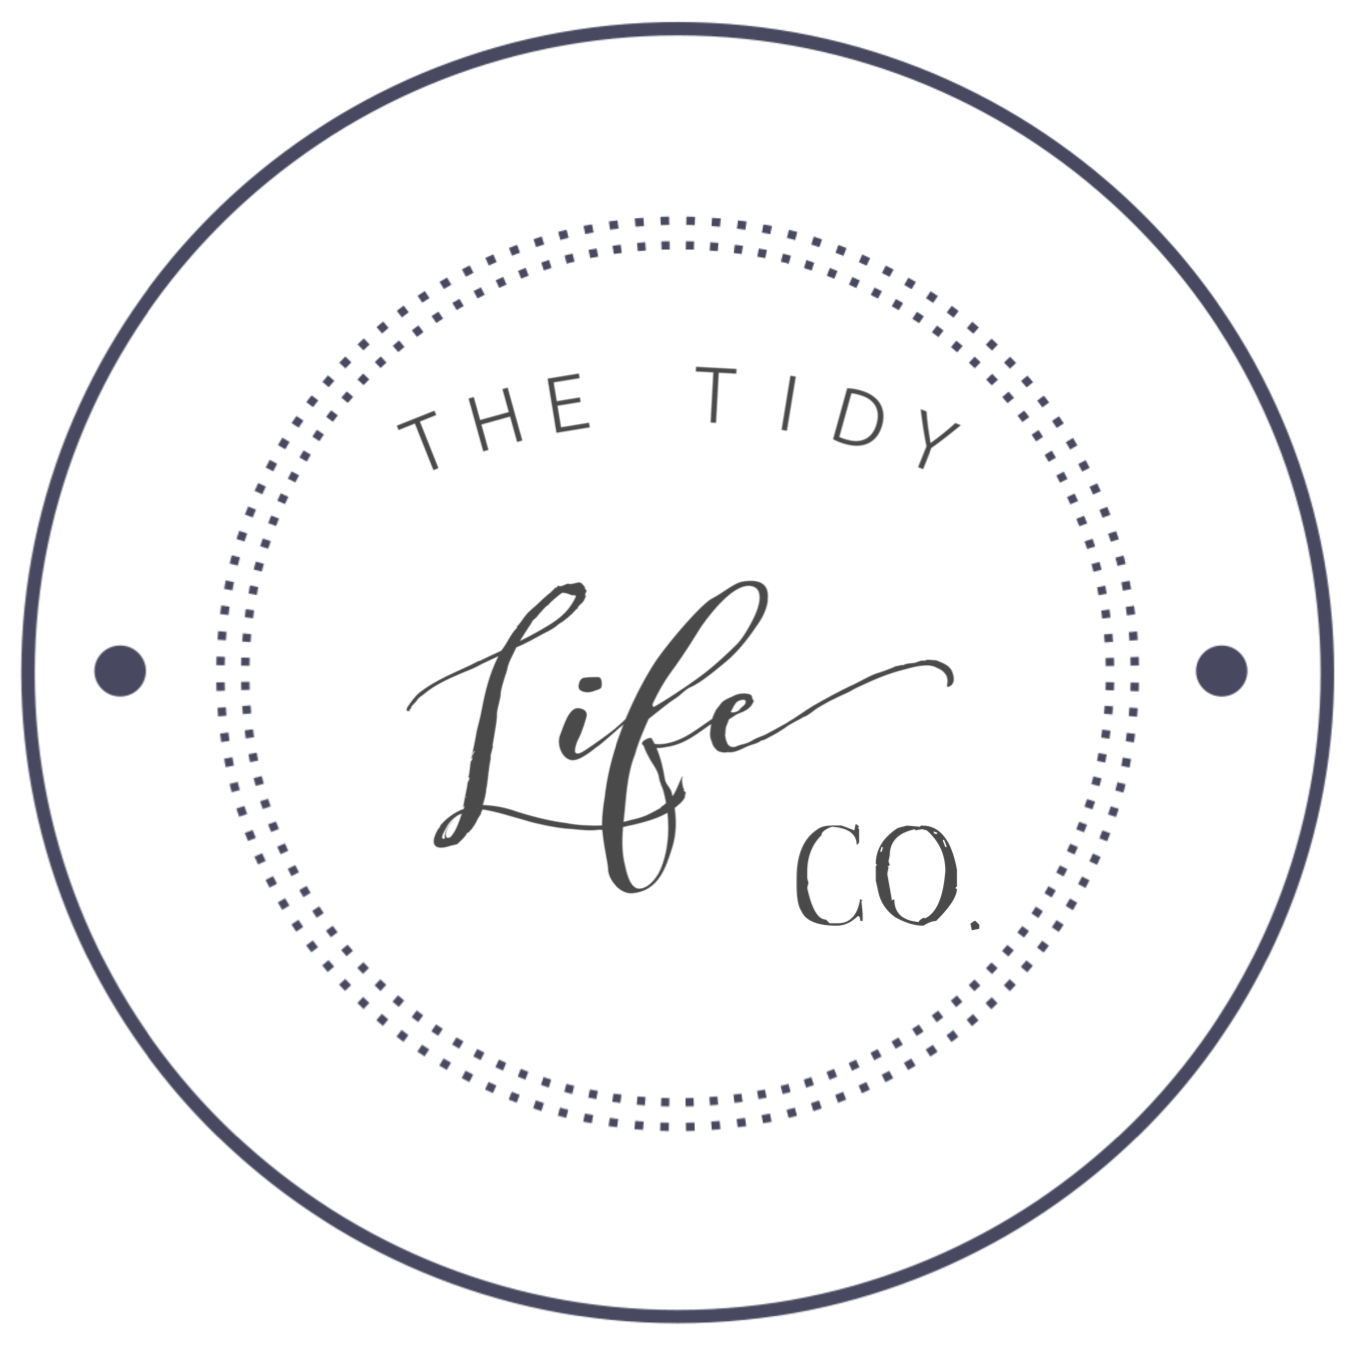 The Tidy Life Co.